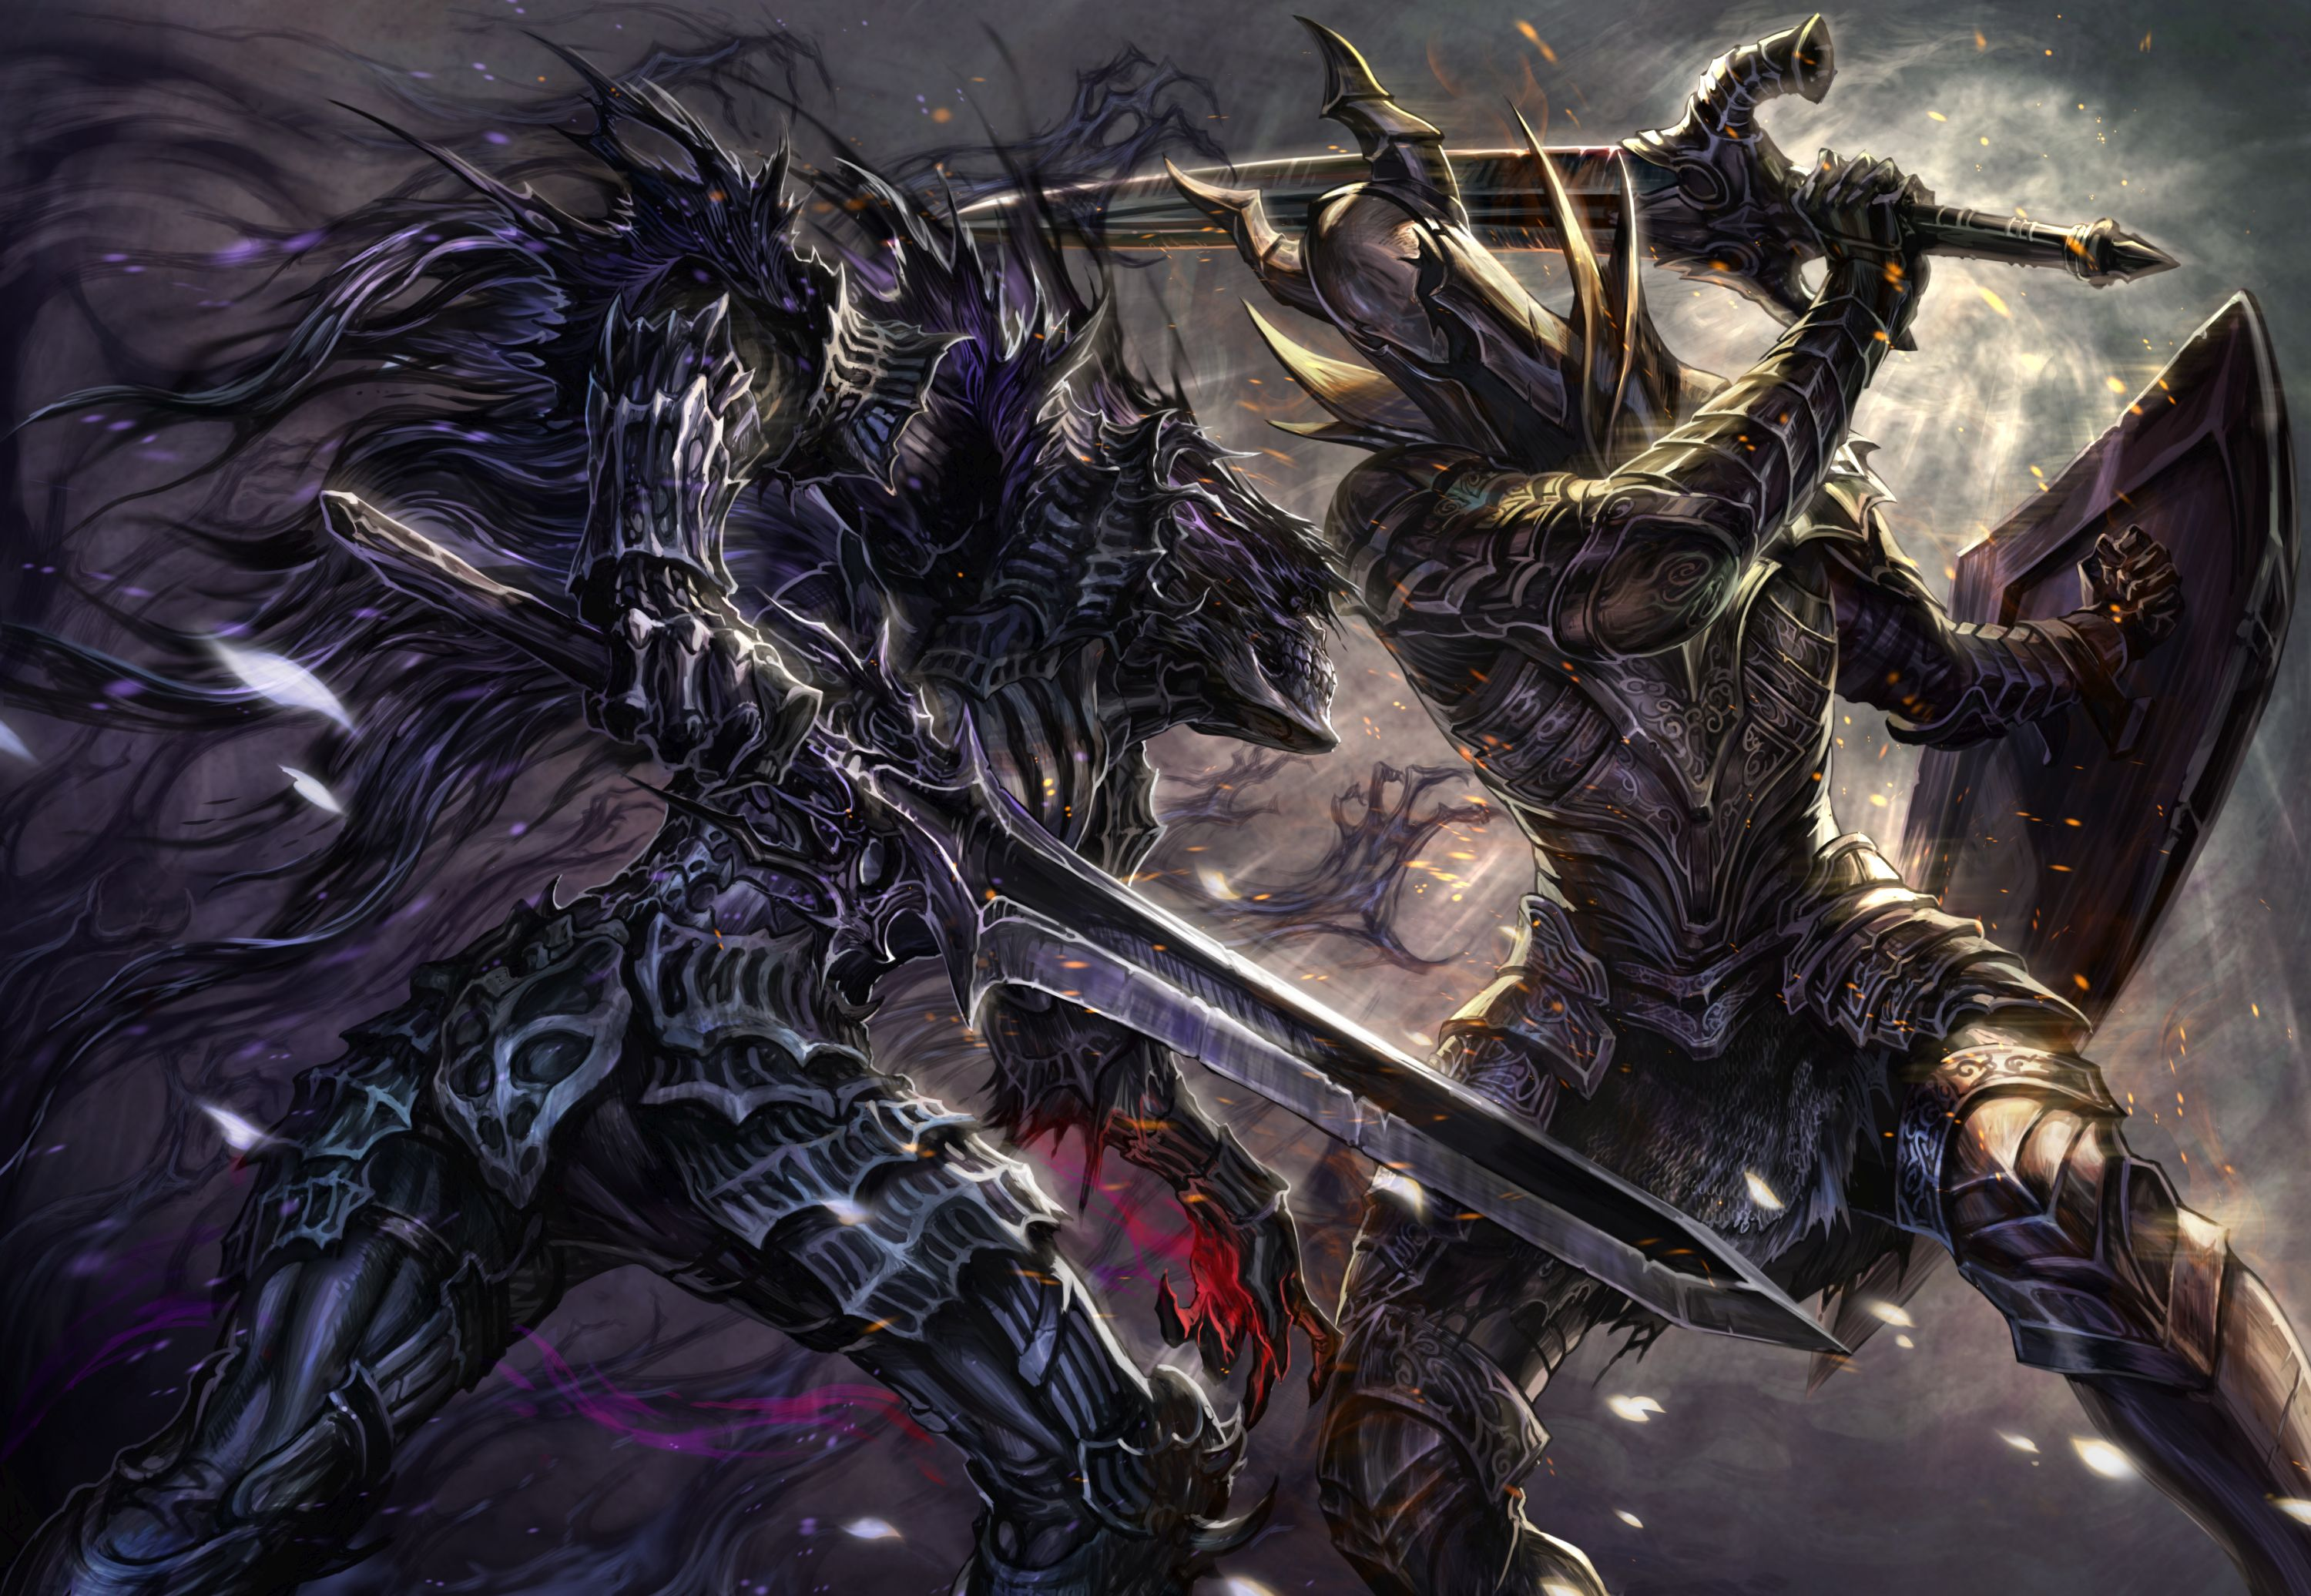 Safebooru 2boys Armor Battle Black Knight Dark Souls Cape